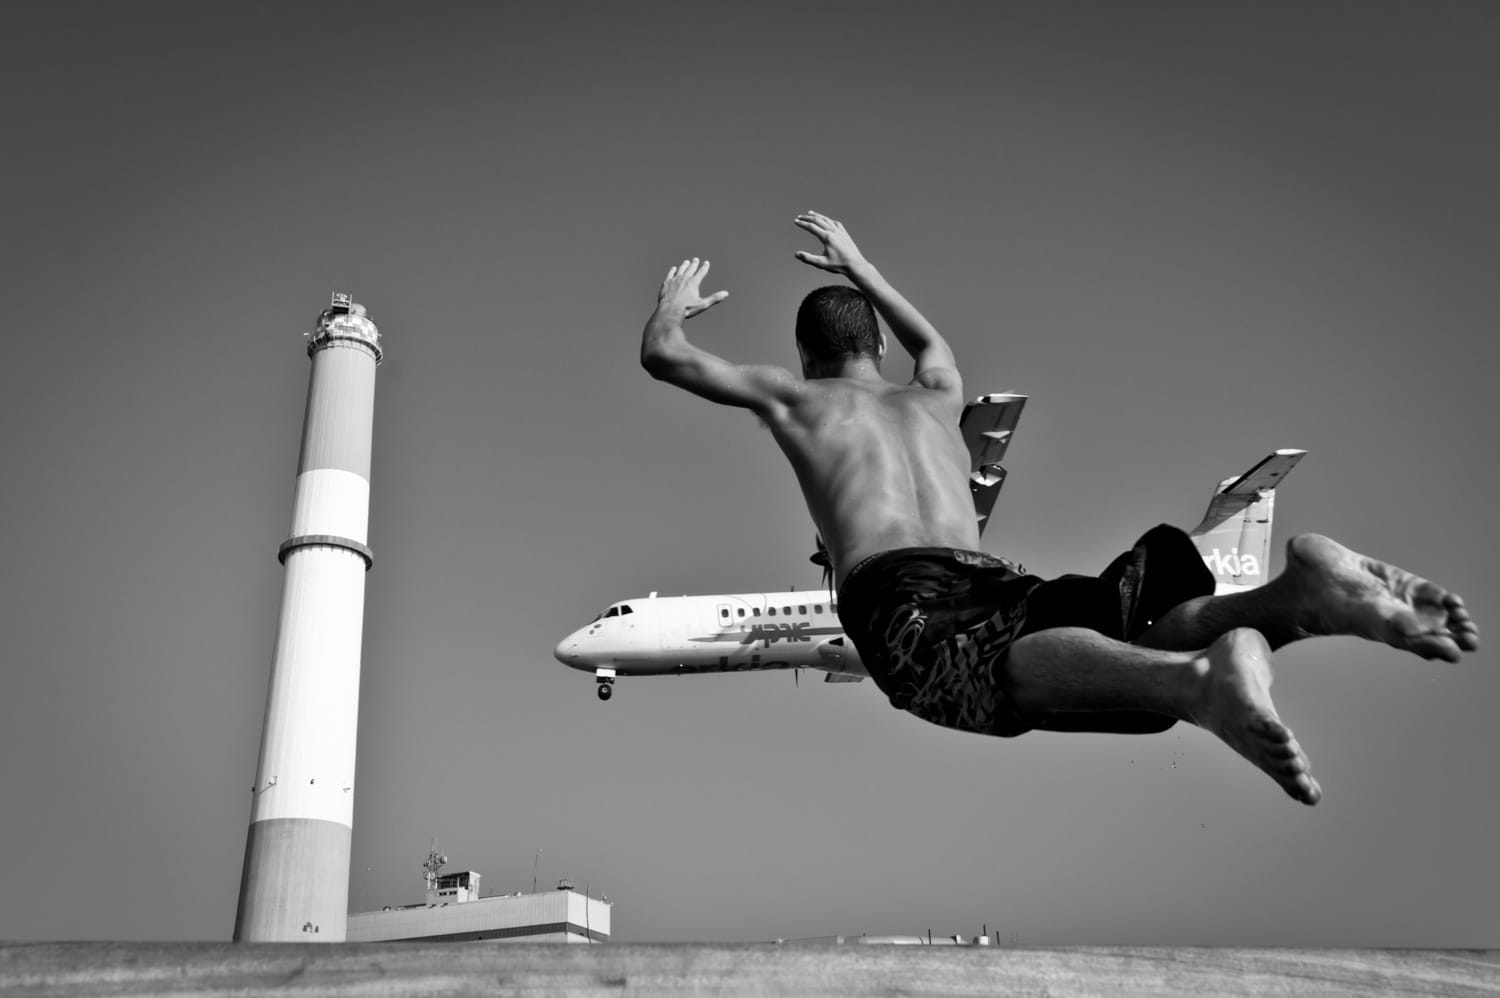 Learning to fly by Gabi Ben avraham